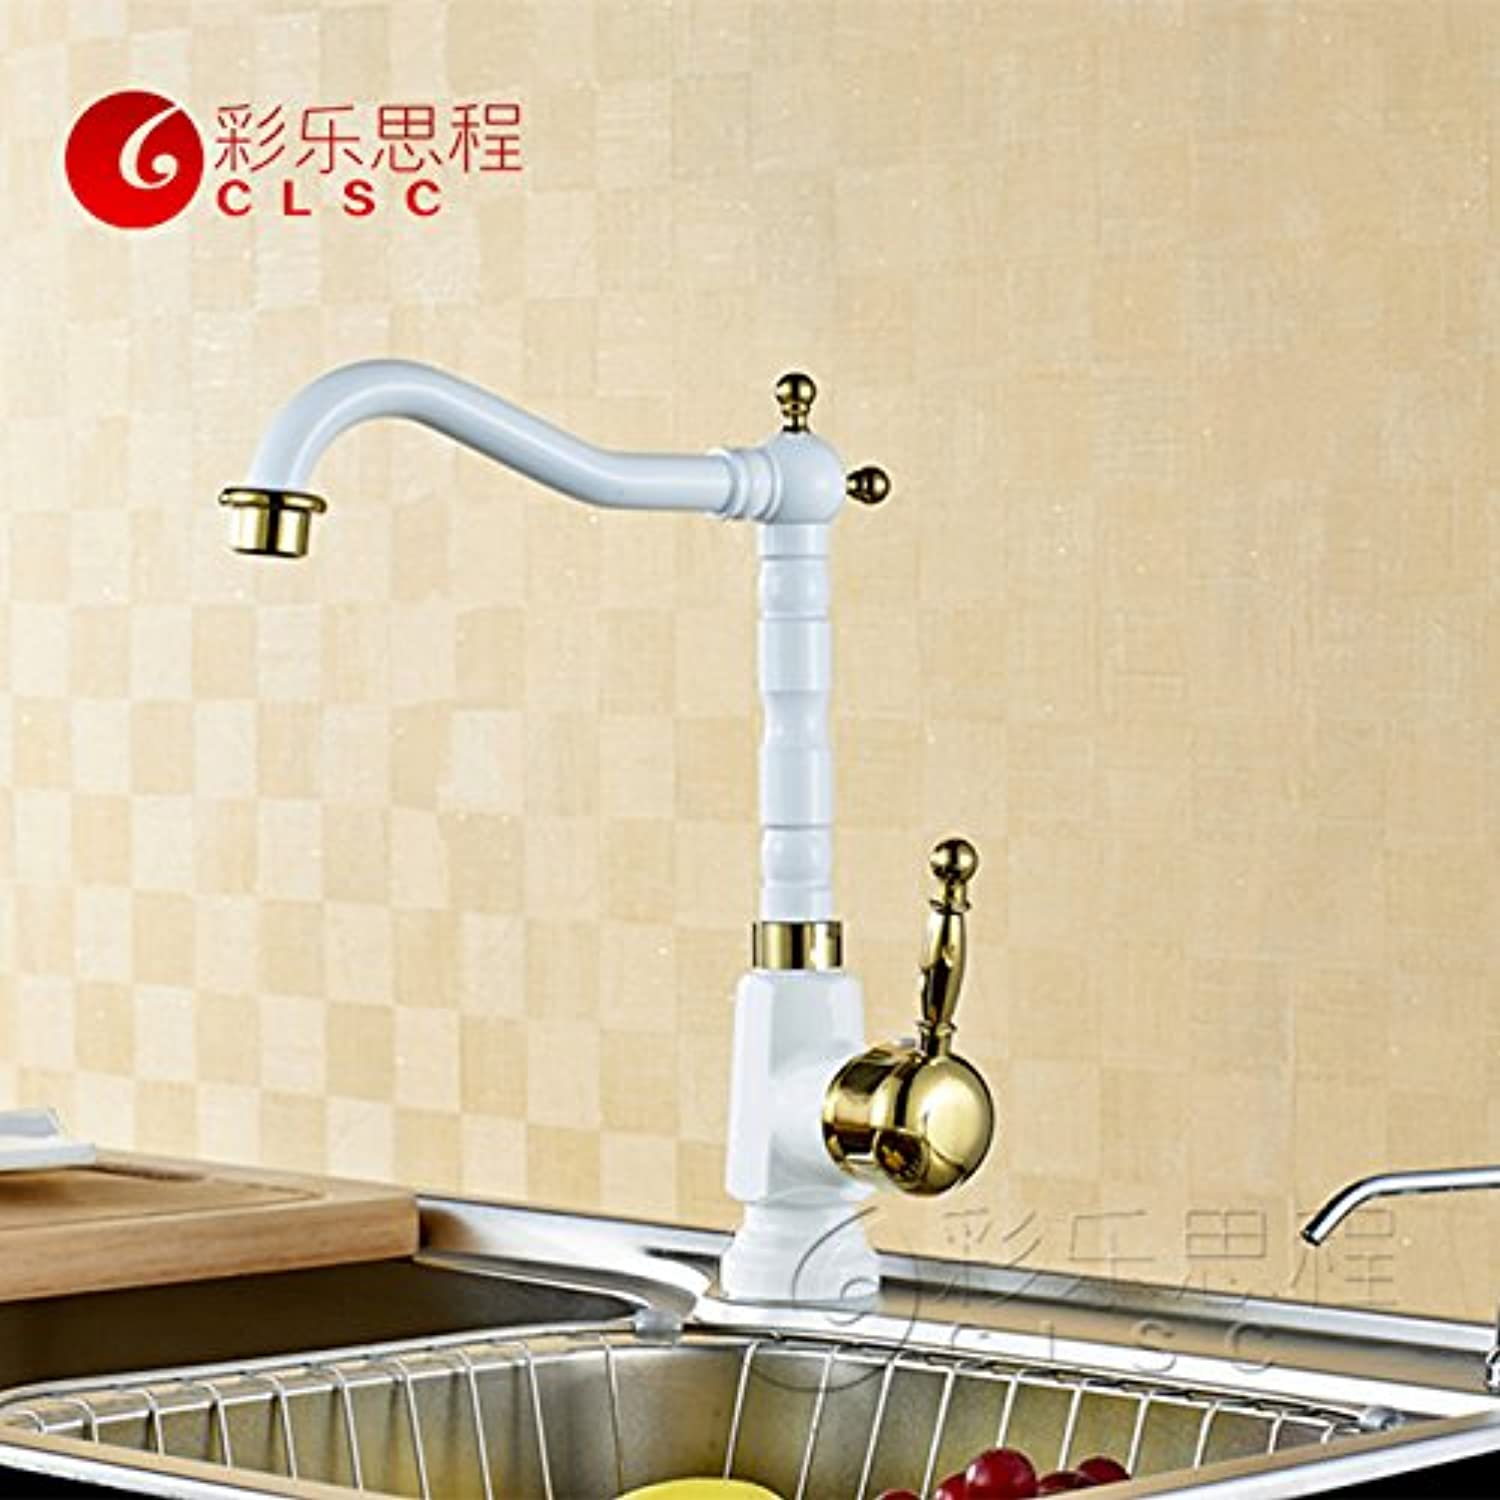 JIAHENGY Sink Mixer Faucet tap Creative modern trend fashion simple LED RGB Glass Waterfall with Light Basin in Toilet Kitchen bathroom